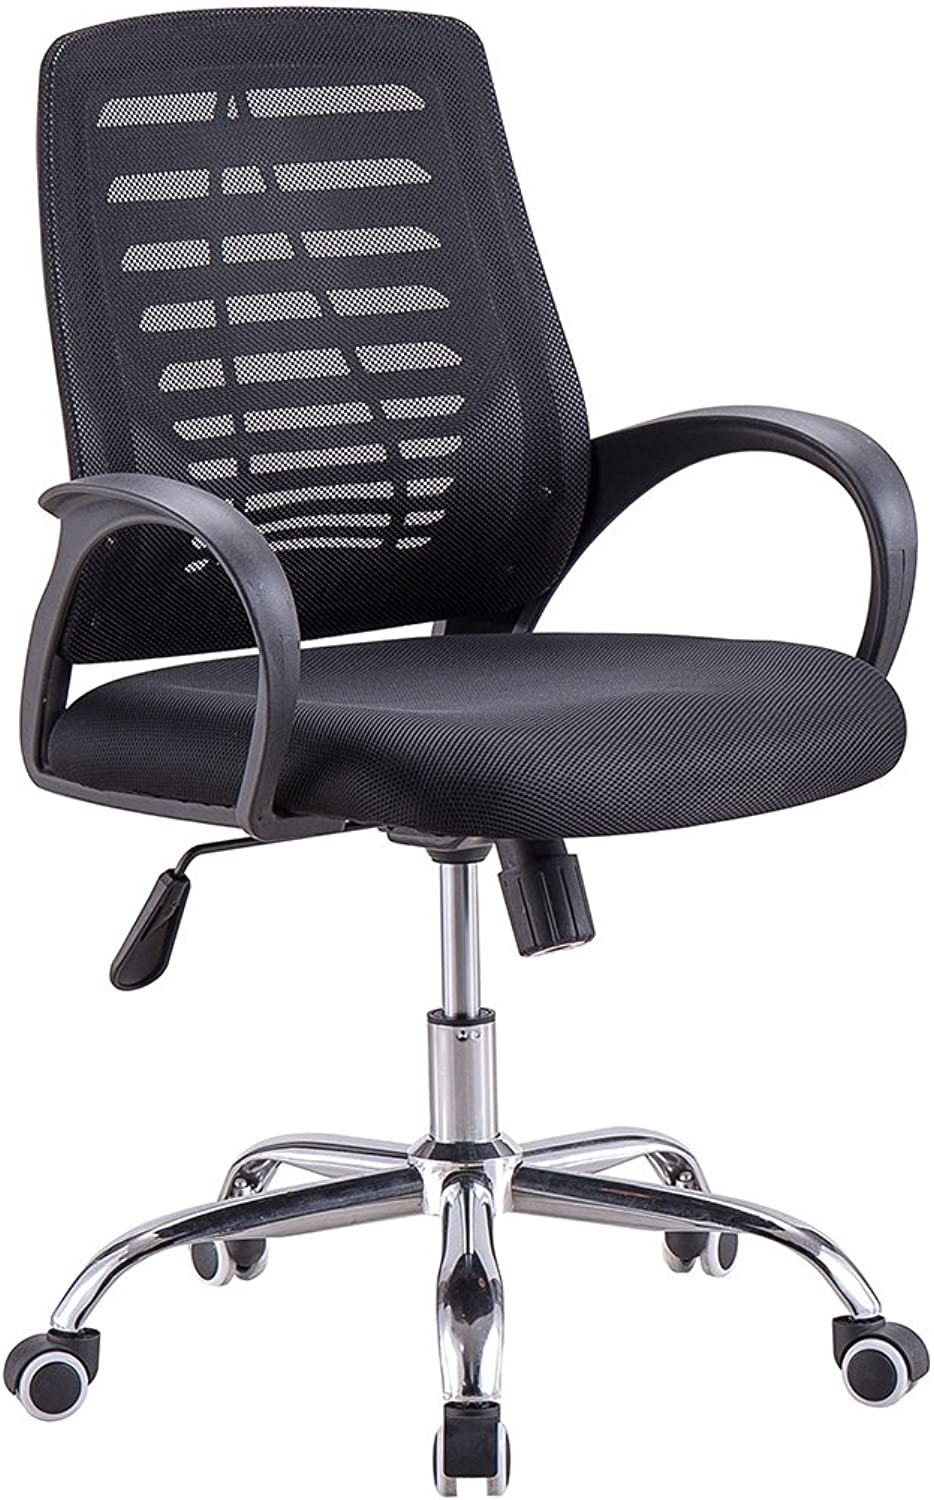 Greawei@ Home Computer Chairs Office Chairs Ergonomic Chair Lift Zhuanyi Internet Cafes Bow Staff Chair(Multiple Colour) Comfortable and Durable